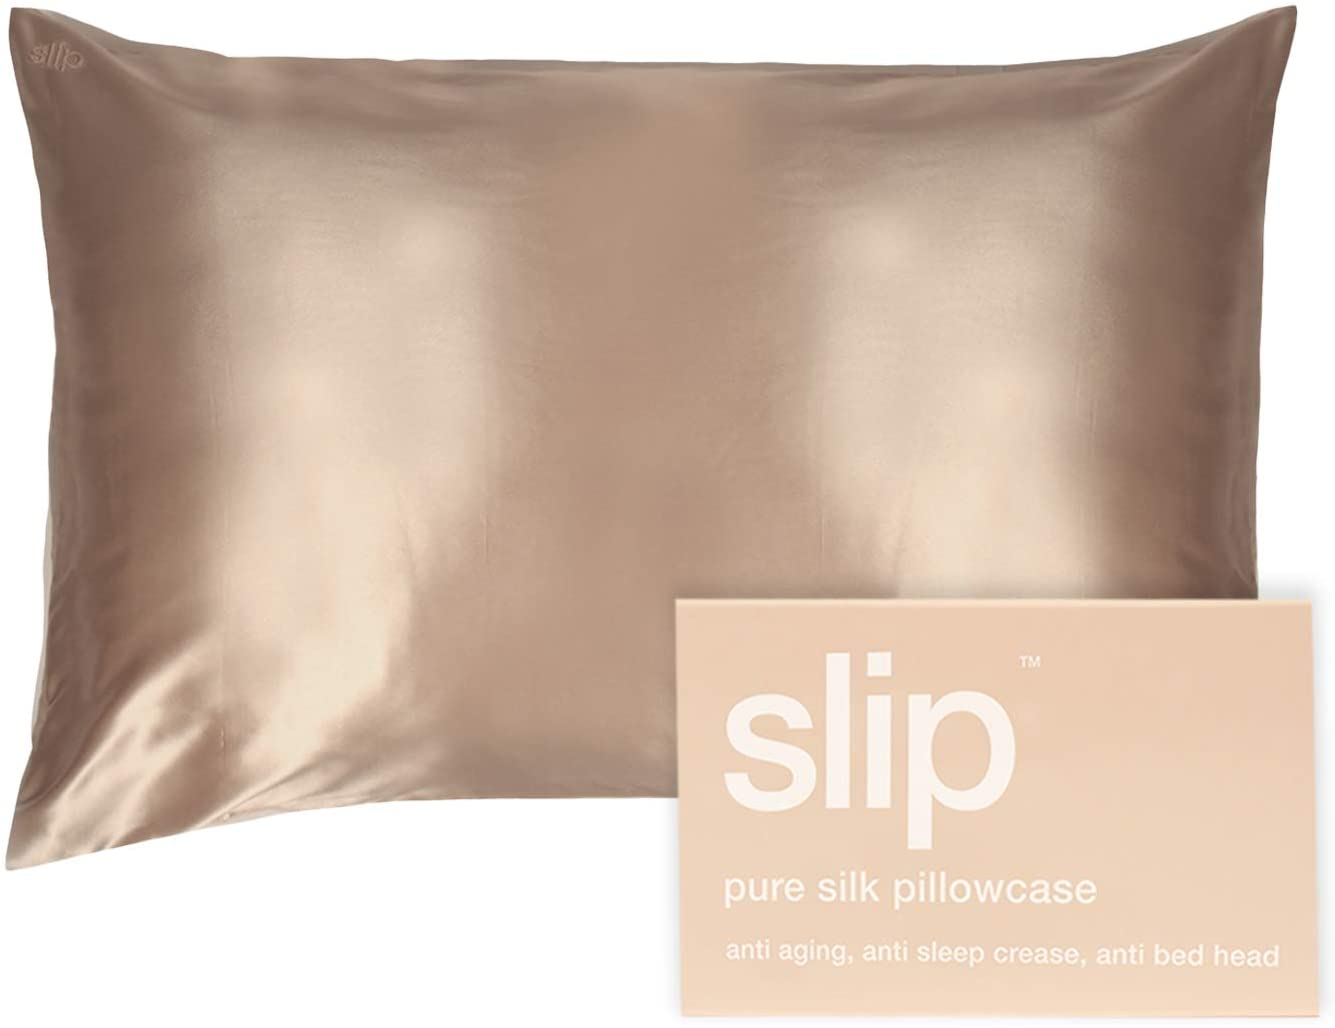 beauty-products-for-mom-Slip Pillowcase